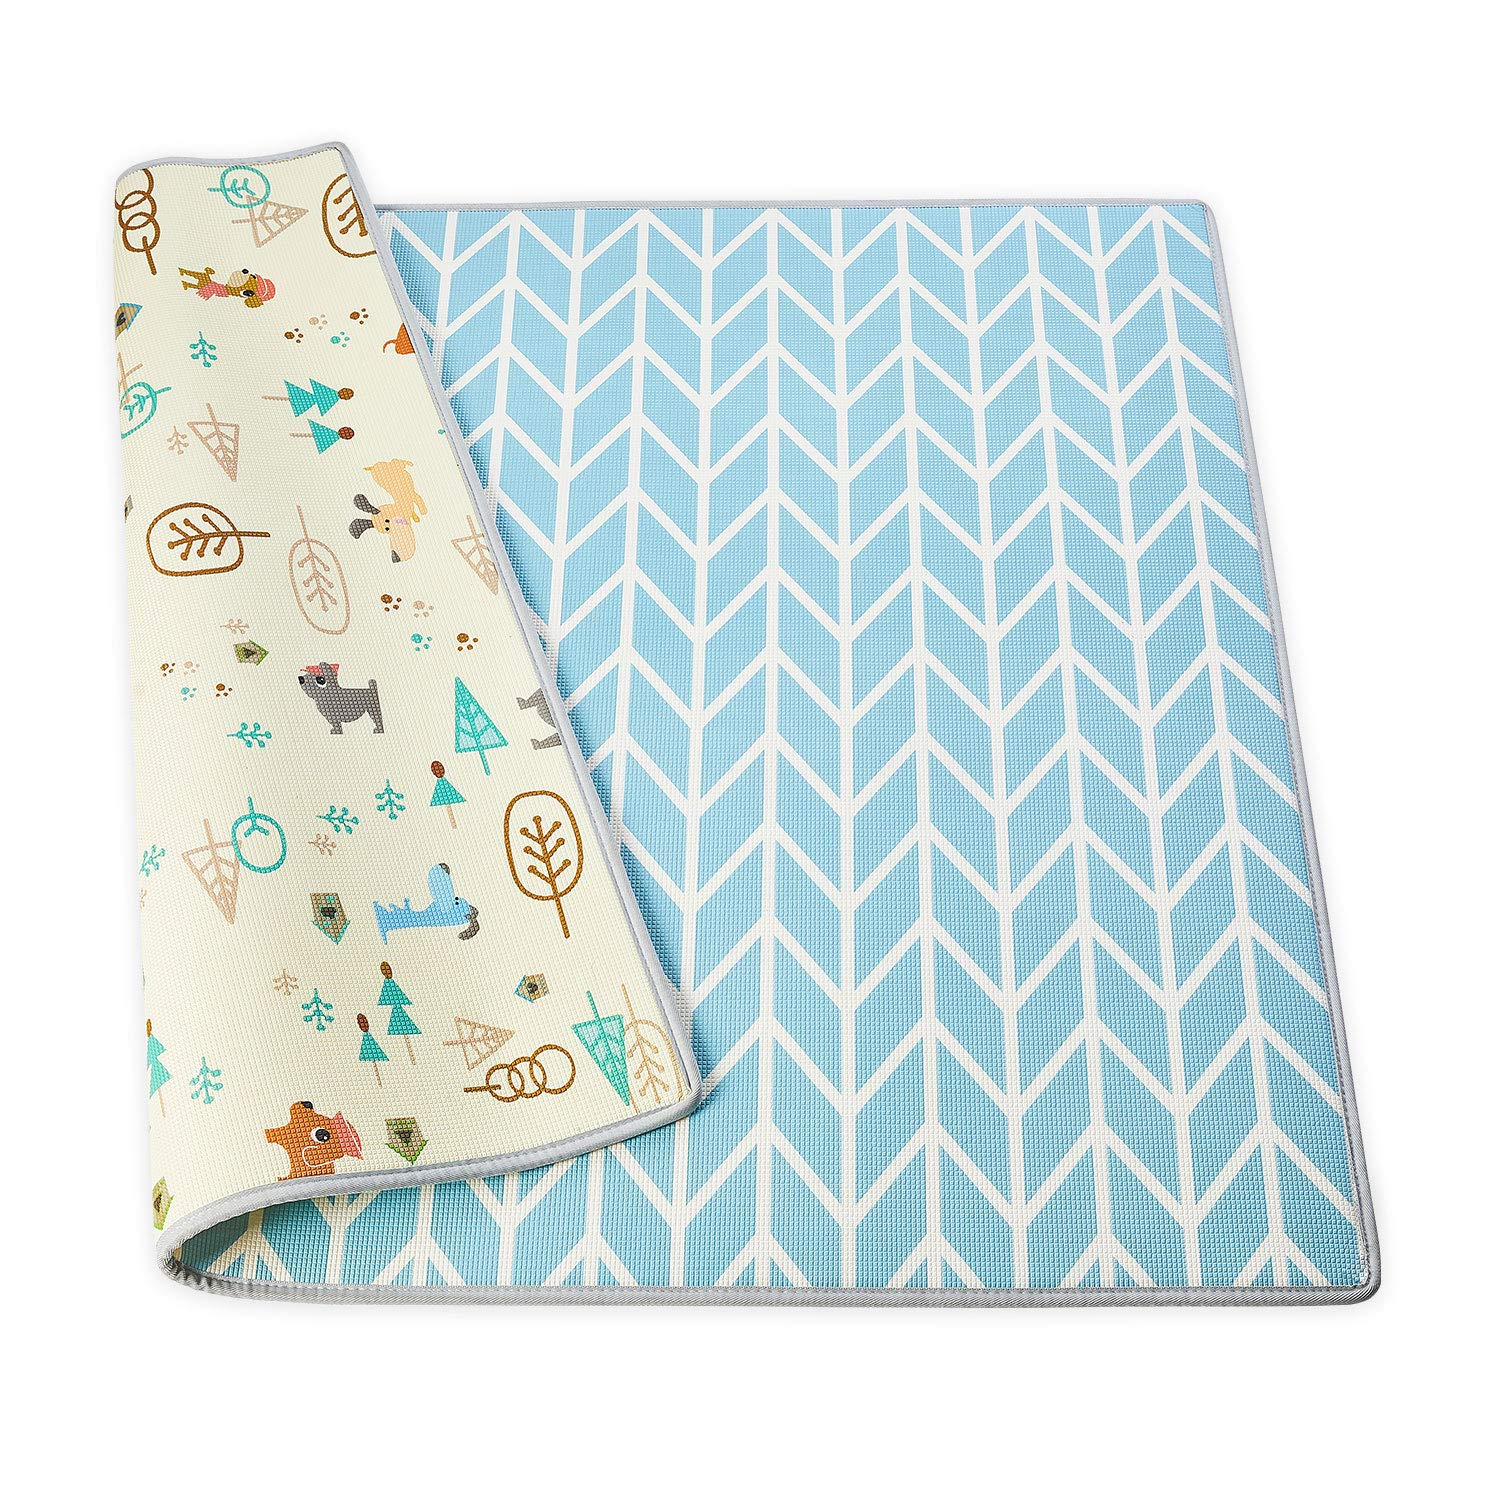 Angelbliss Play Mats for Babies - Haute Collection - Play Mat for Infants – Non-Toxic Baby Rug – Cushioned Baby Mat Waterproof Playmat – Reversible Double-Sided Kindergarten Mat (Medium - Blue)